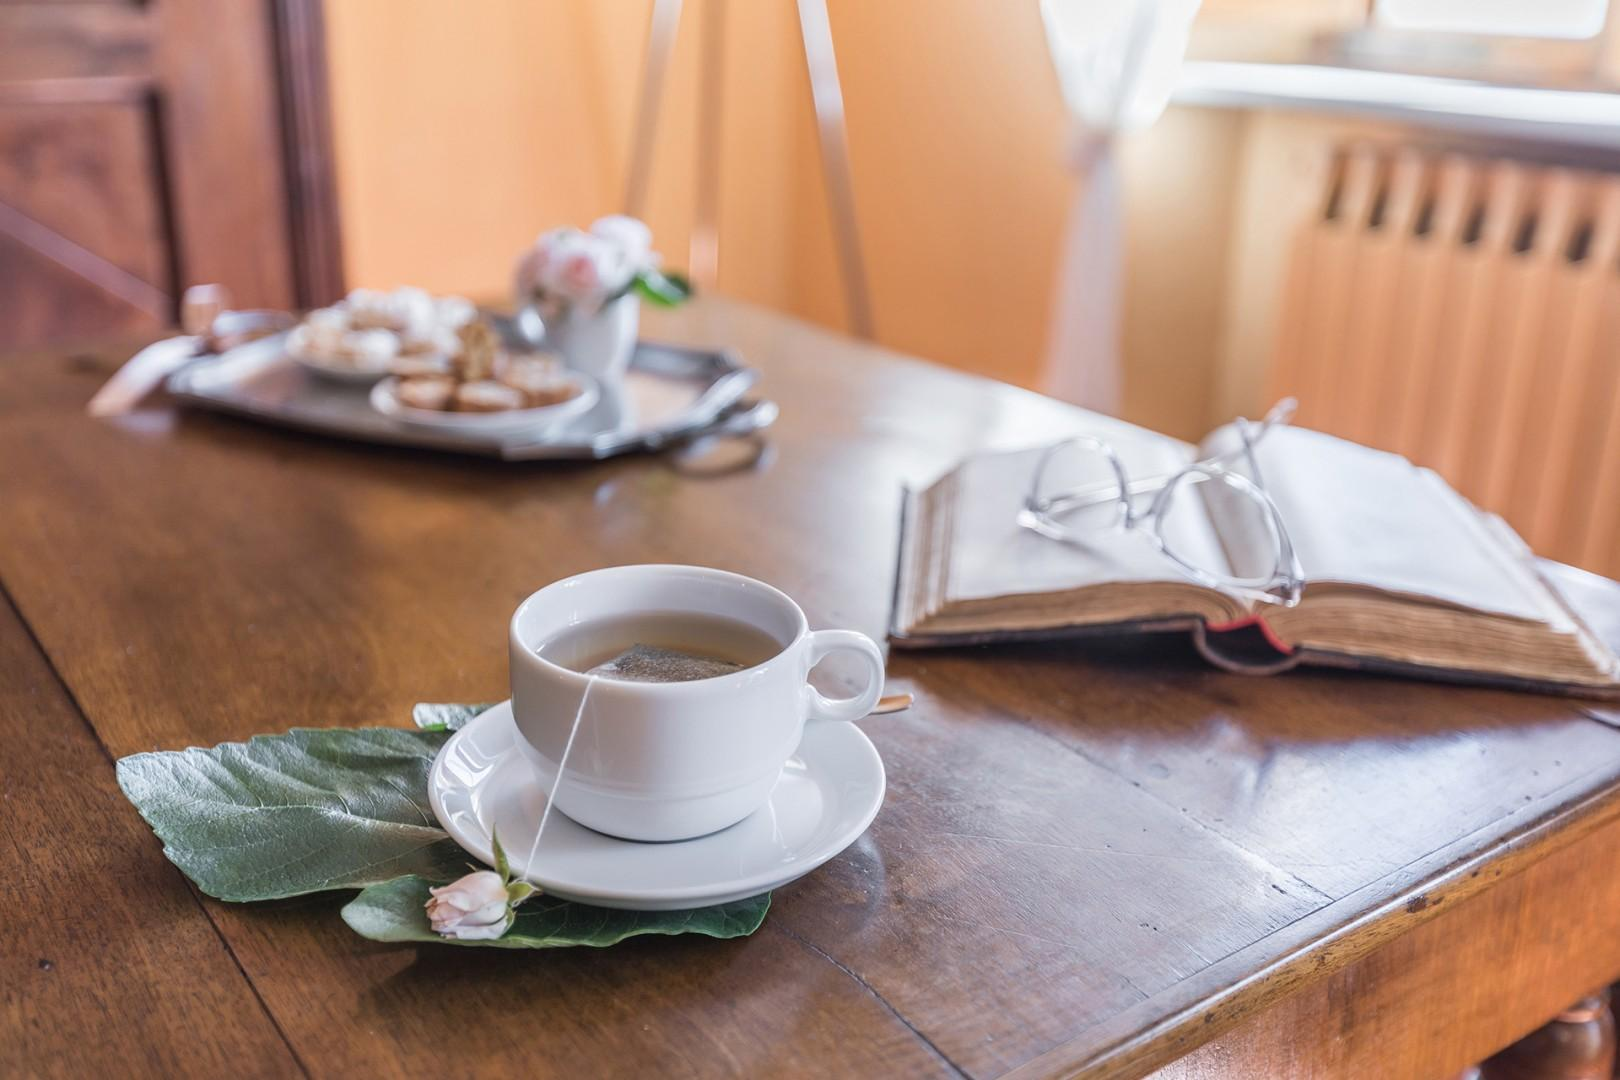 Enjoy your morning coffee or do some work at the writing desk in front of the windows.